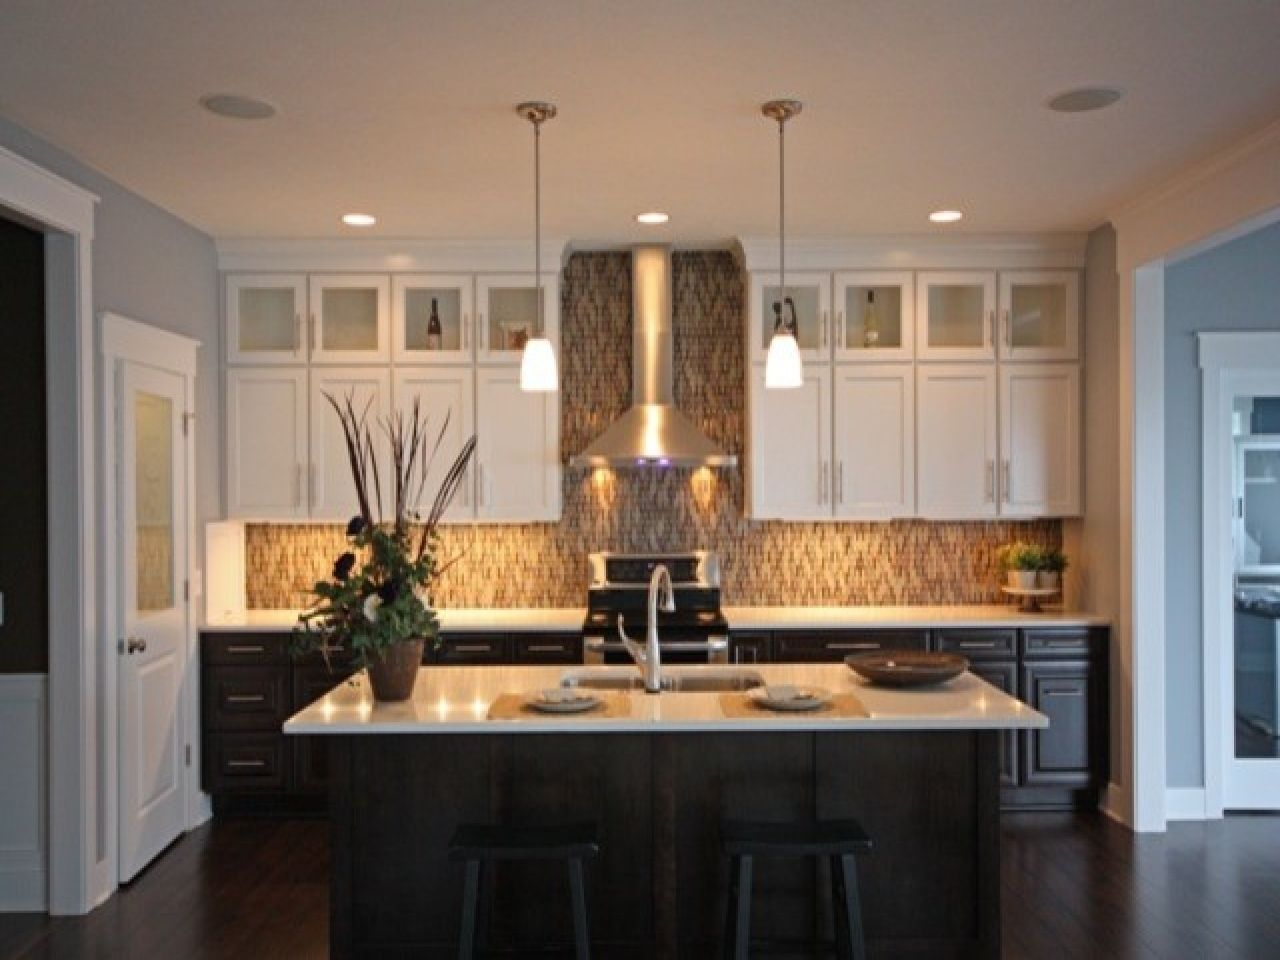 Image result for kitchen cabinets dark lower light upper | Kitchen on light and dark kitchen cabinets, dark maple kitchen cabinets, kitchens without top cabinets, painted lower kitchen cabinets, dark base light upper cabinets, used lower kitchen cabinets, dark blue kitchen cabinets, different upper and lower kitchen cabinets, painted upper cabinets, light colored kitchen cabinets, kitchen cabinets with lighted upper cabinets, kitchens with dark upper cabinets,